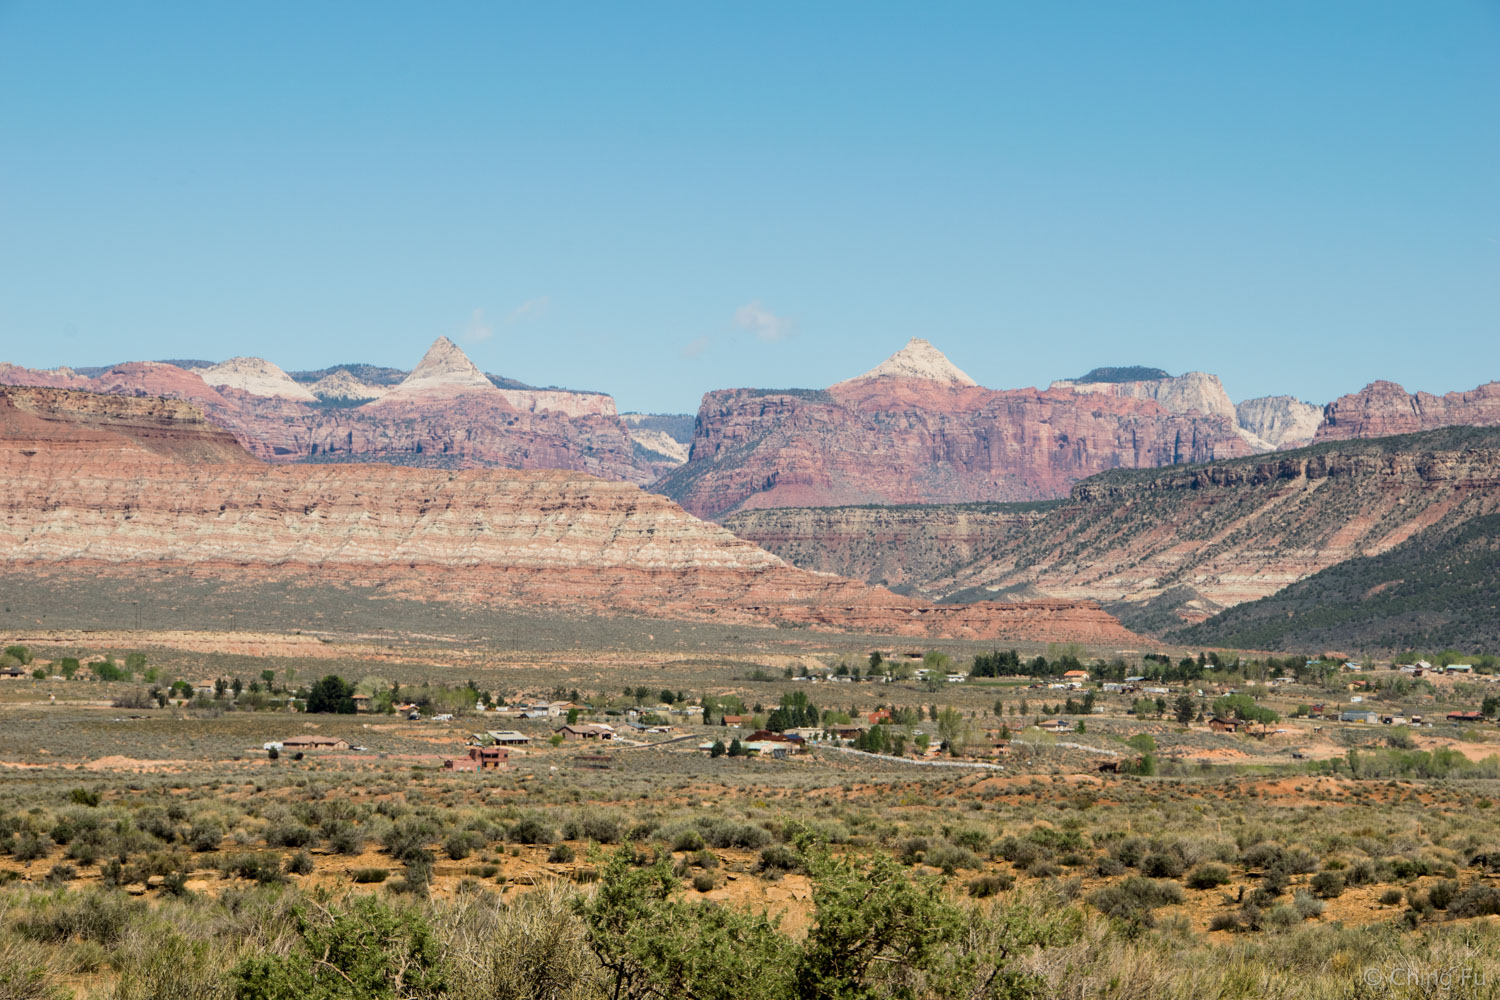 View of Zion mountains from our boondocking site.